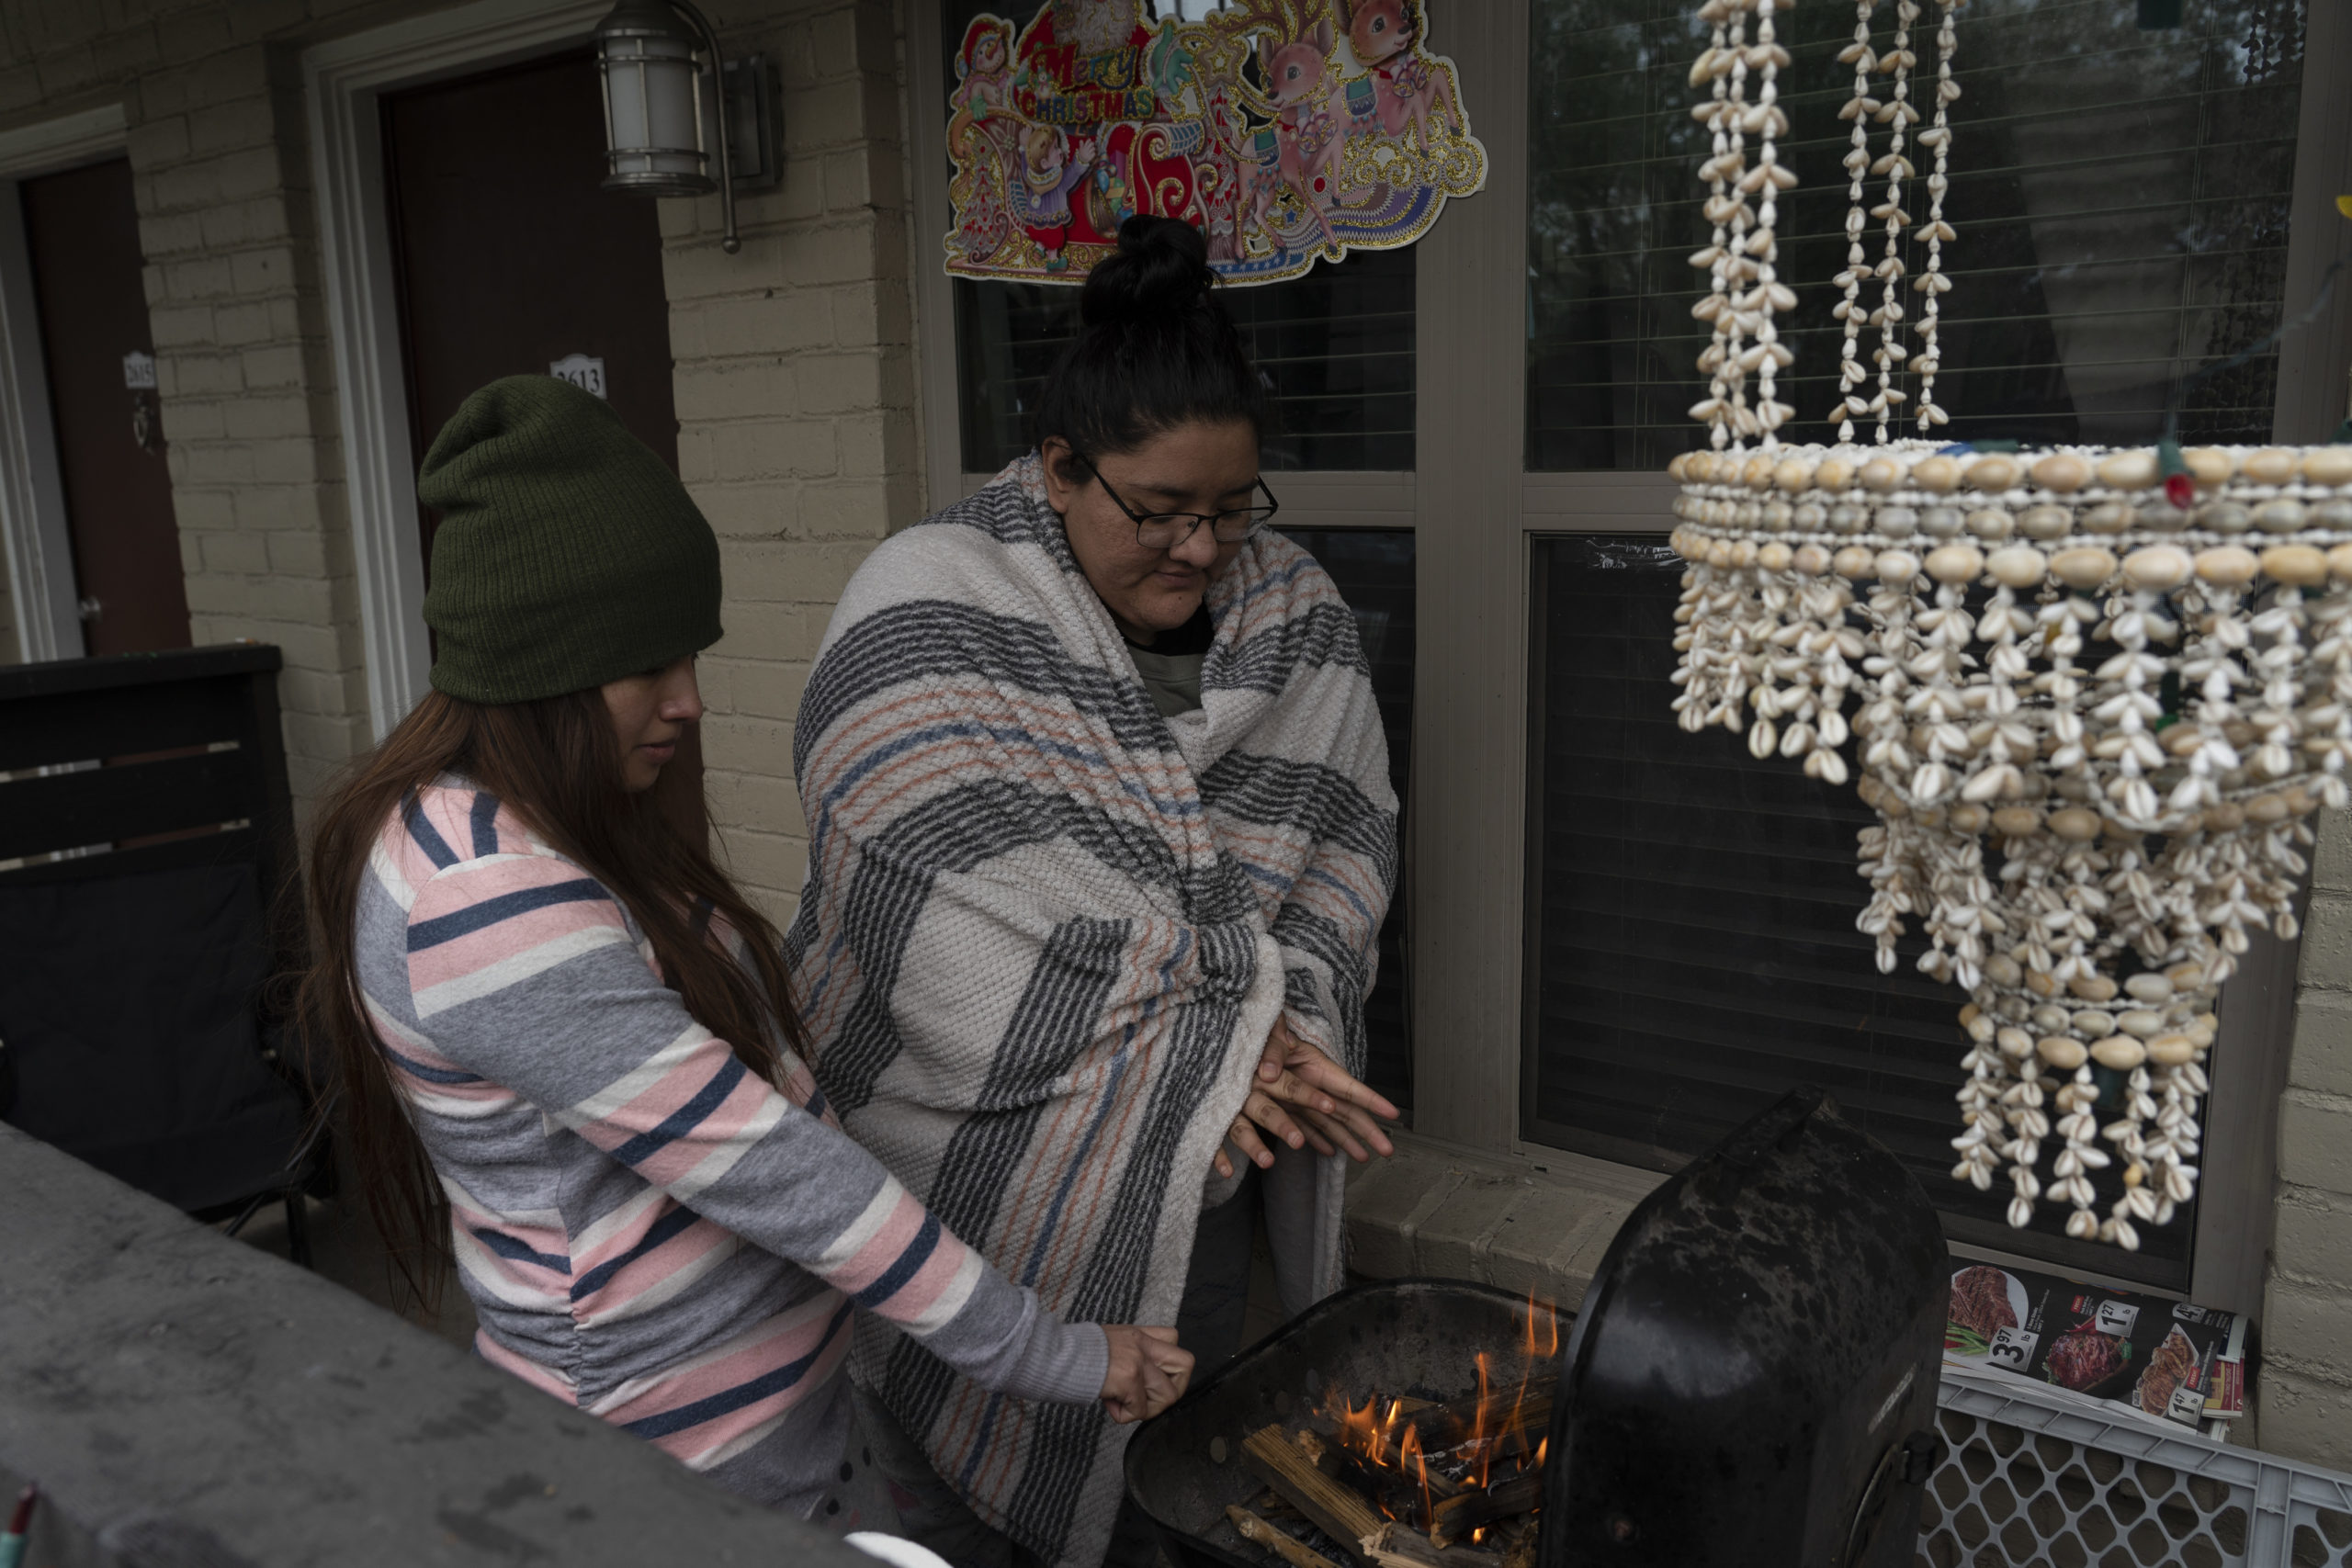 HOUSTON, TX - FEBRUARY 16: Karla Perez and Esperanza Gonzalez warm up by a barbecue grill during power outage caused by the winter storm on February 16, 2021 in Houston, Texas. Winter storm Uri has brought historic cold weather, power outages and traffic accidents to Texas as storms have swept across 26 states with a mix of freezing temperatures and precipitation. (Photo by Go Nakamura/Getty Images)